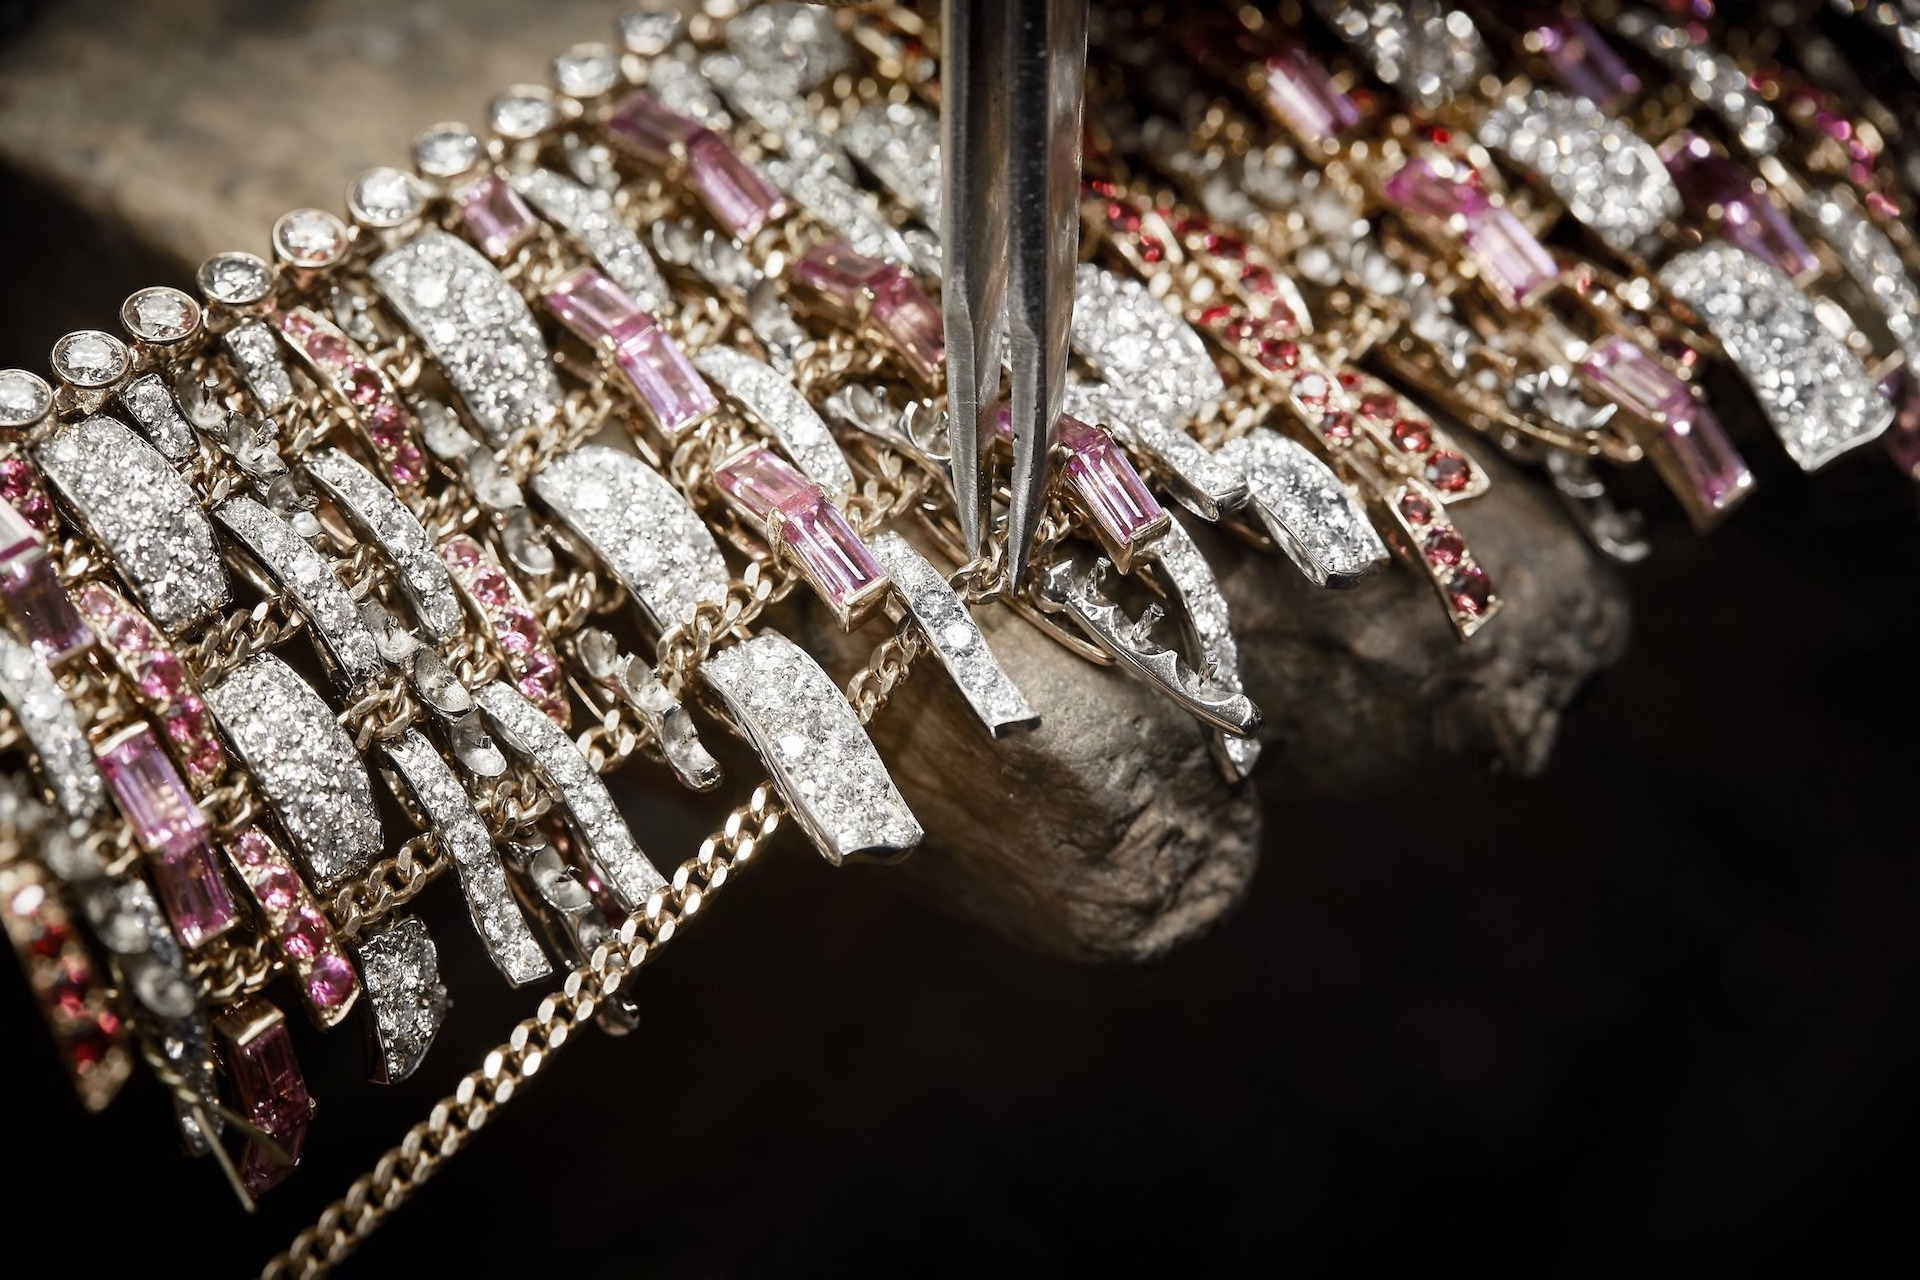 Chanel Turns to Tweed for New Jewellery Collection